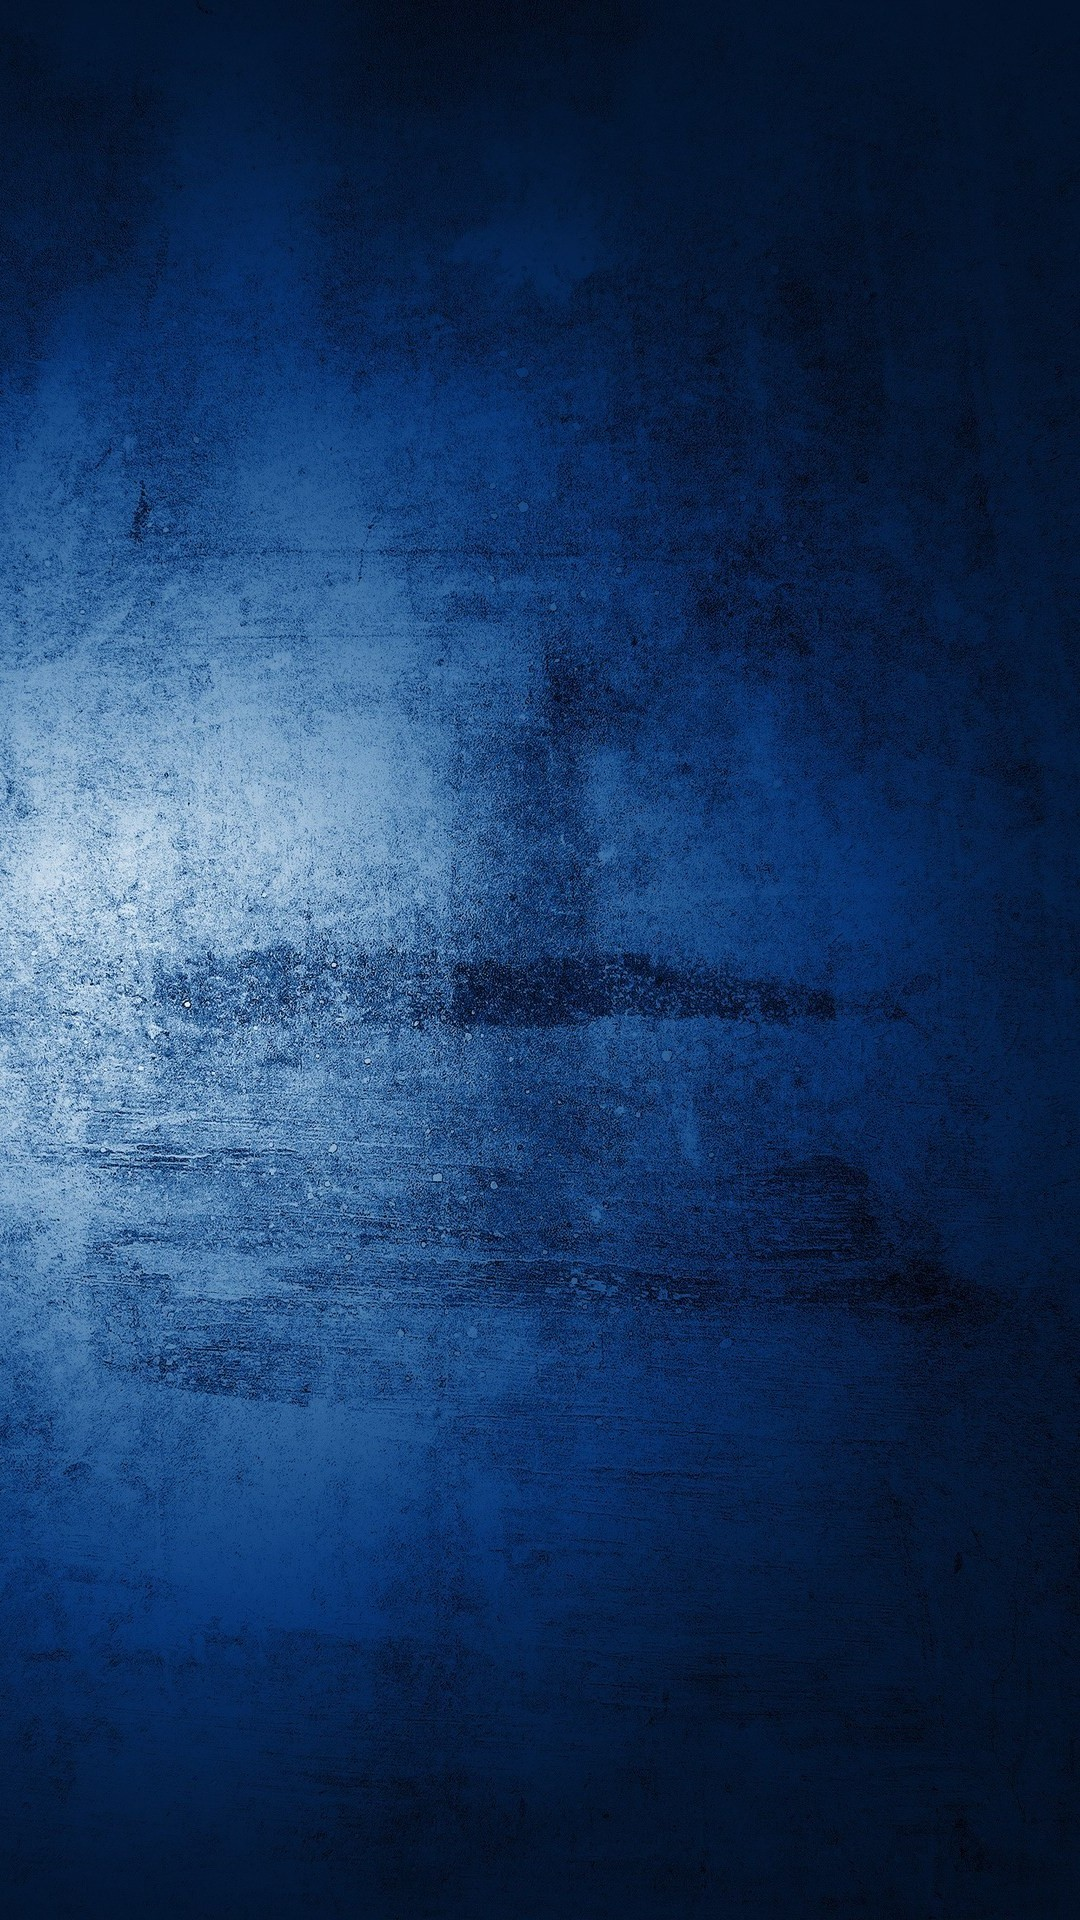 Windows 10 mobile hd wallpapers wallpapersafari for Wallpaper mobile home walls